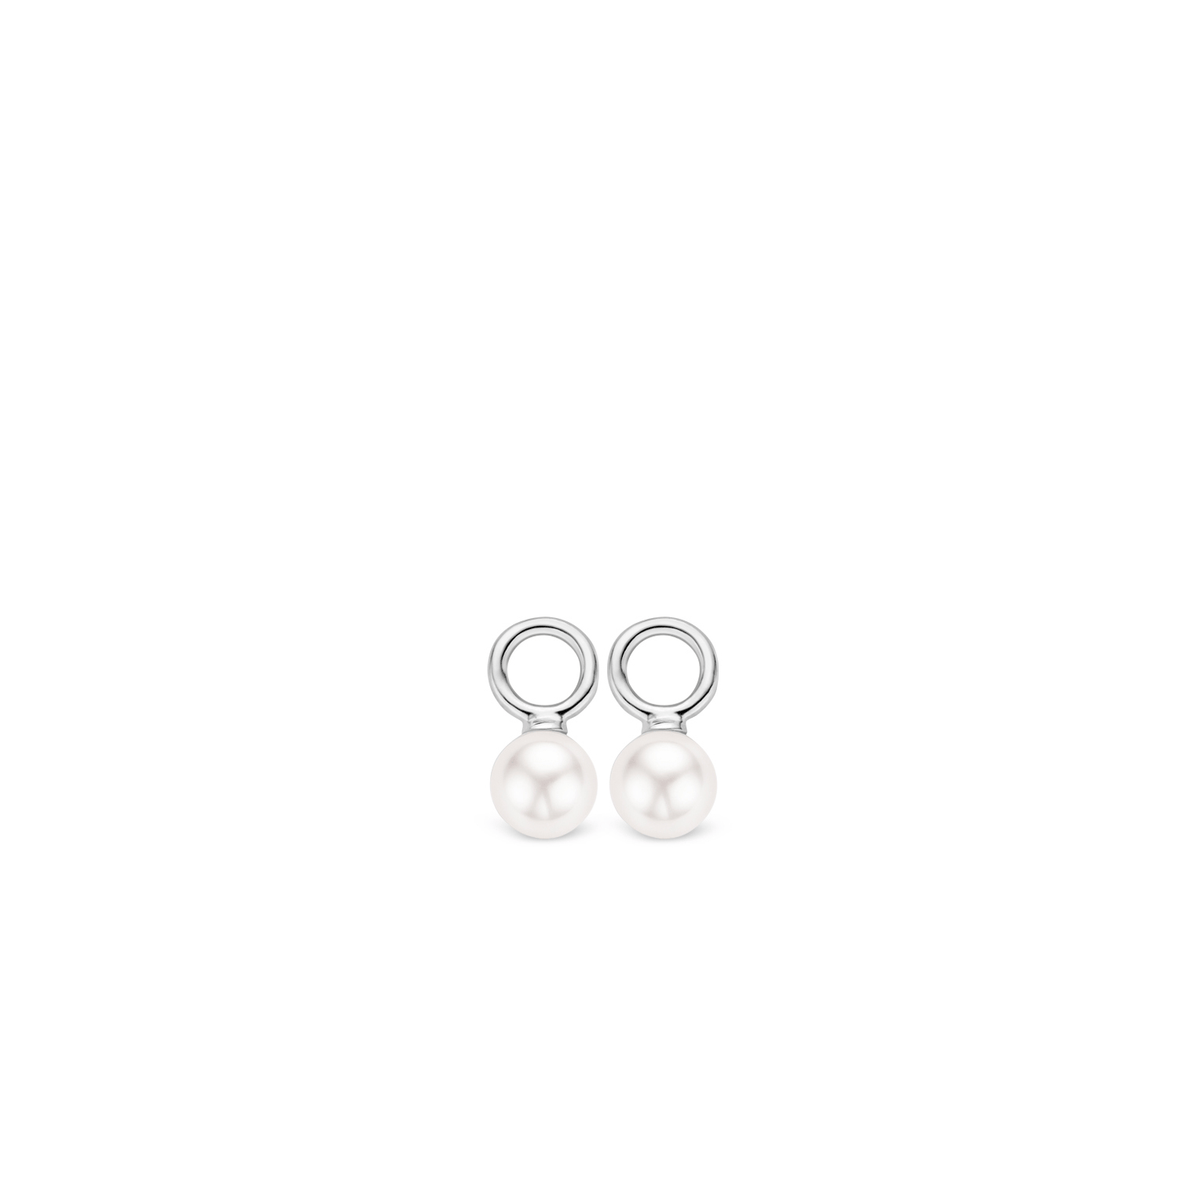 TI SENTO - Milano Ear Charms 9181PW